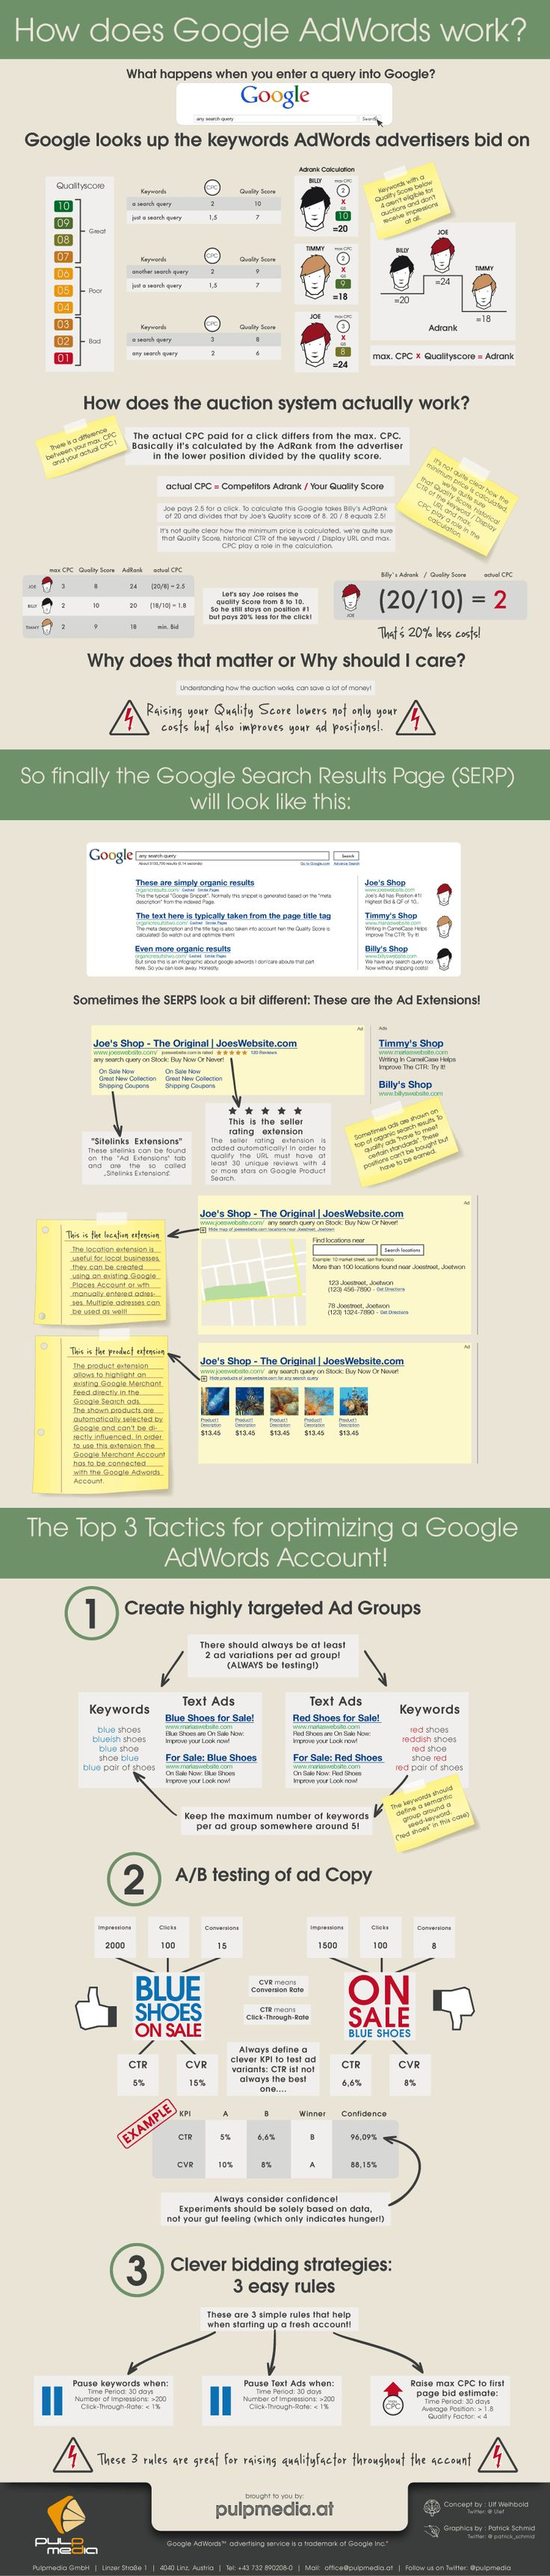 how does Google Adwords work [Infographic] #googleadwords #ppc #sem